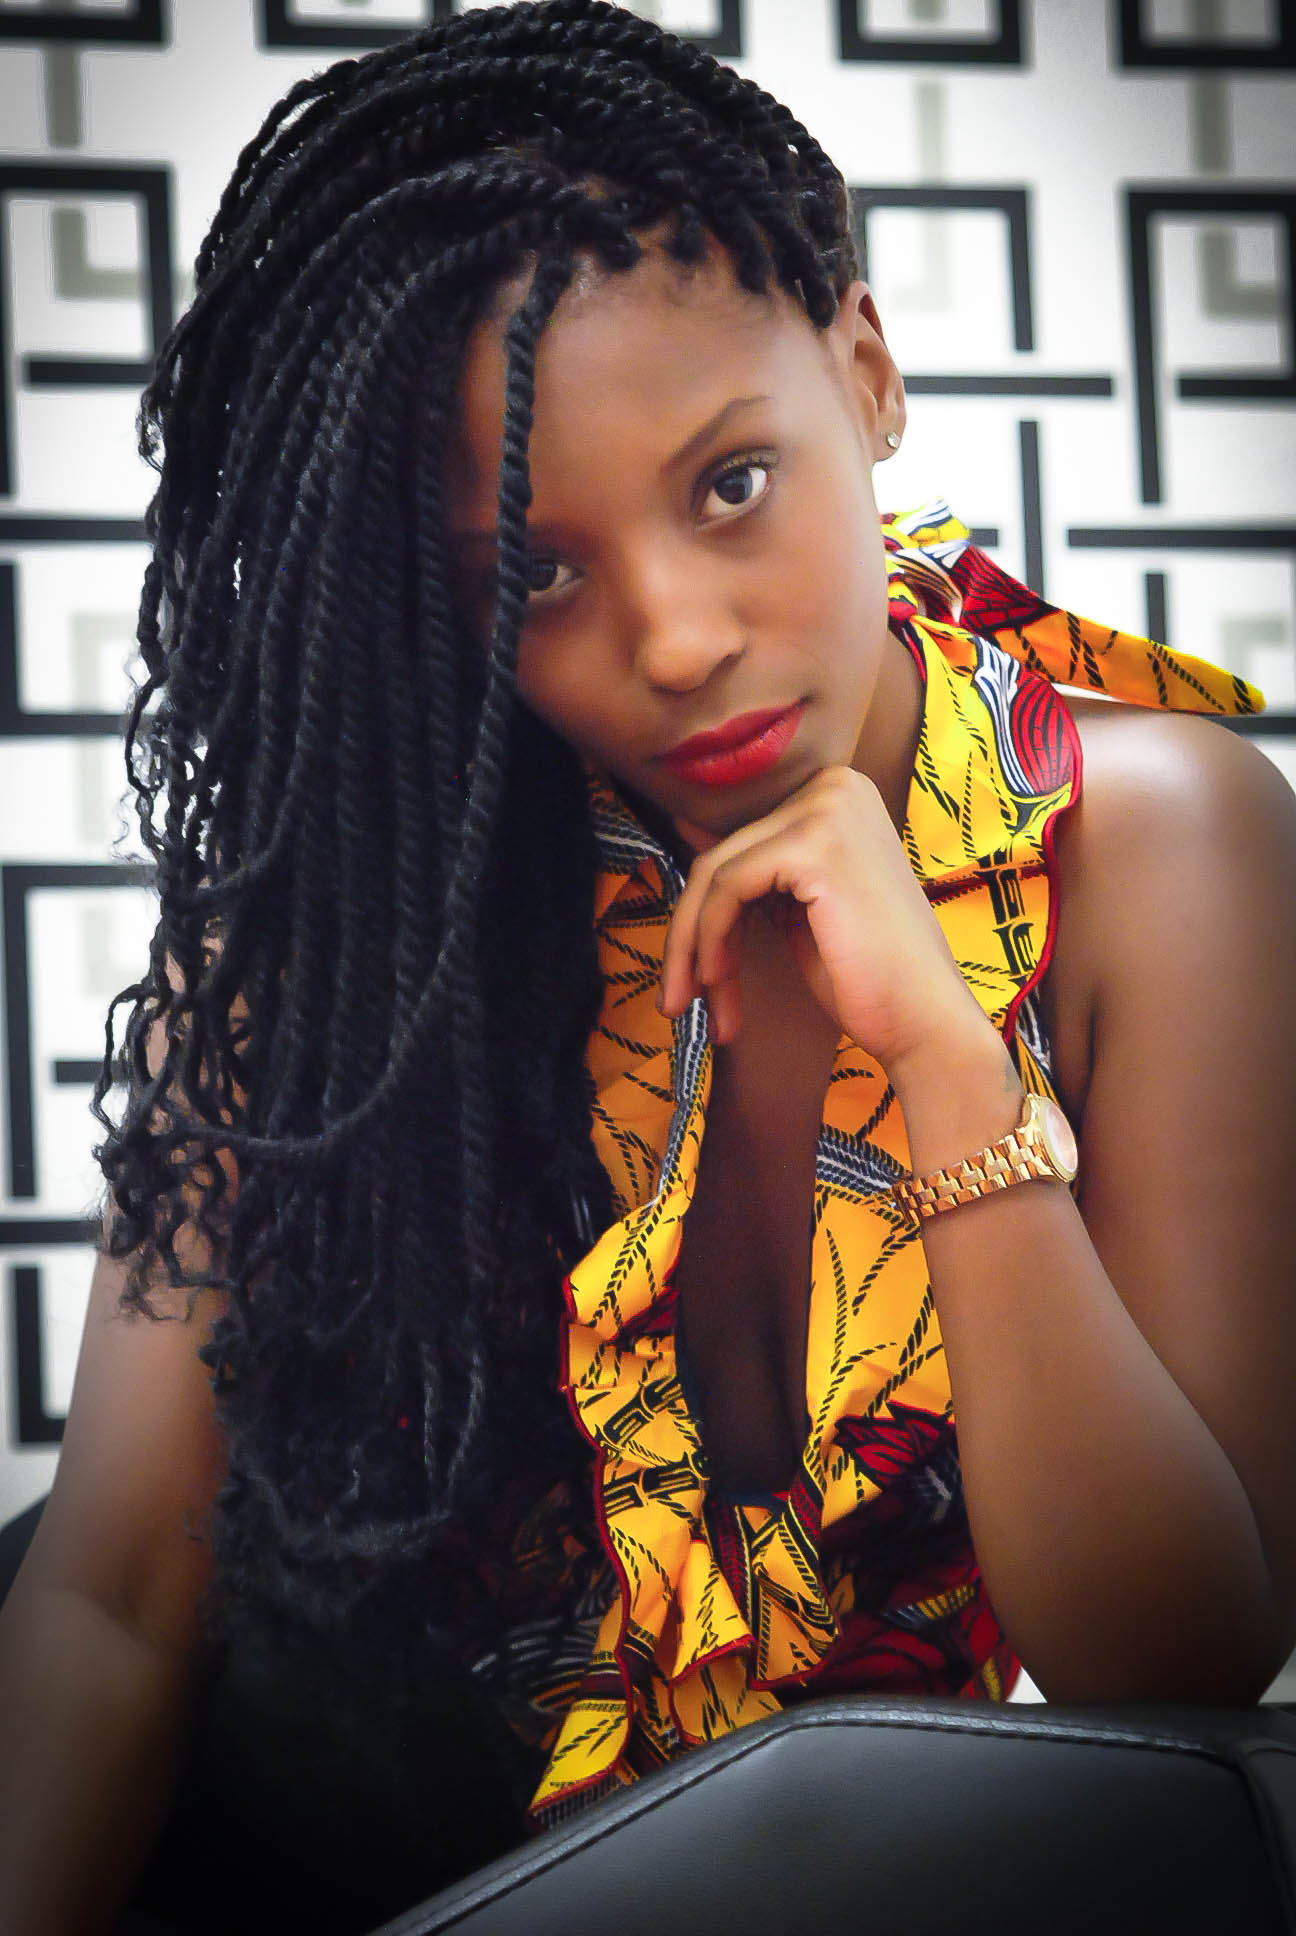 Marley Twist African Hair Braiding Charlotte No 1 African Hair Braiding Boutique In Charlotte Come Get Your Look Of Glamour And Success